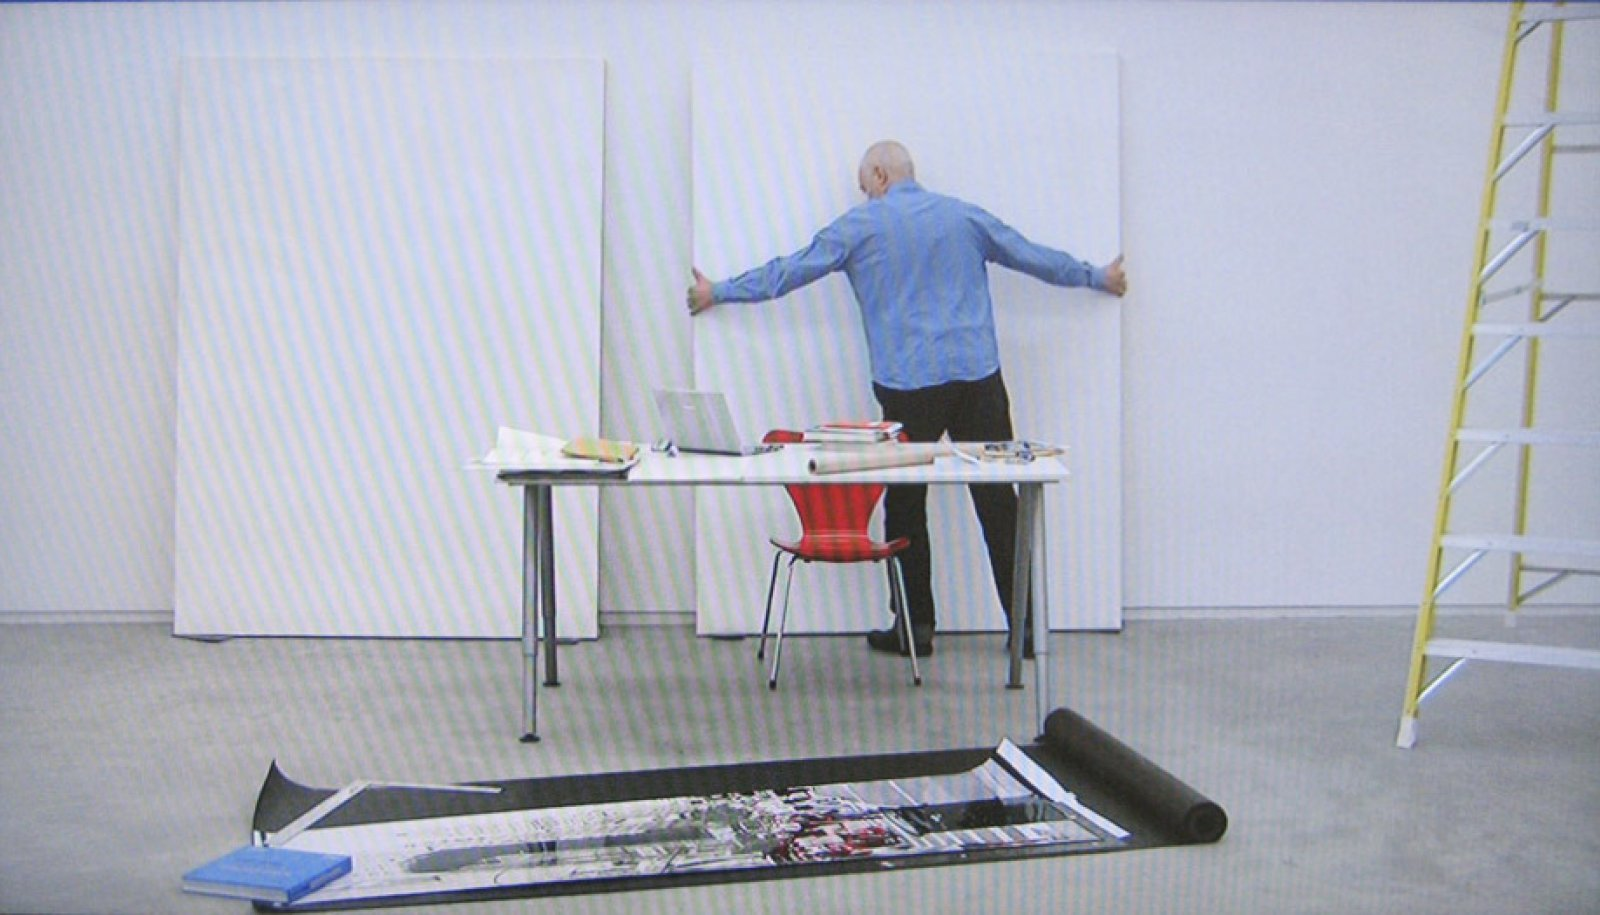 Ian Wallace,At Work 2008 (still), 2008, single channel HD video, 34 minutes, 13 seconds